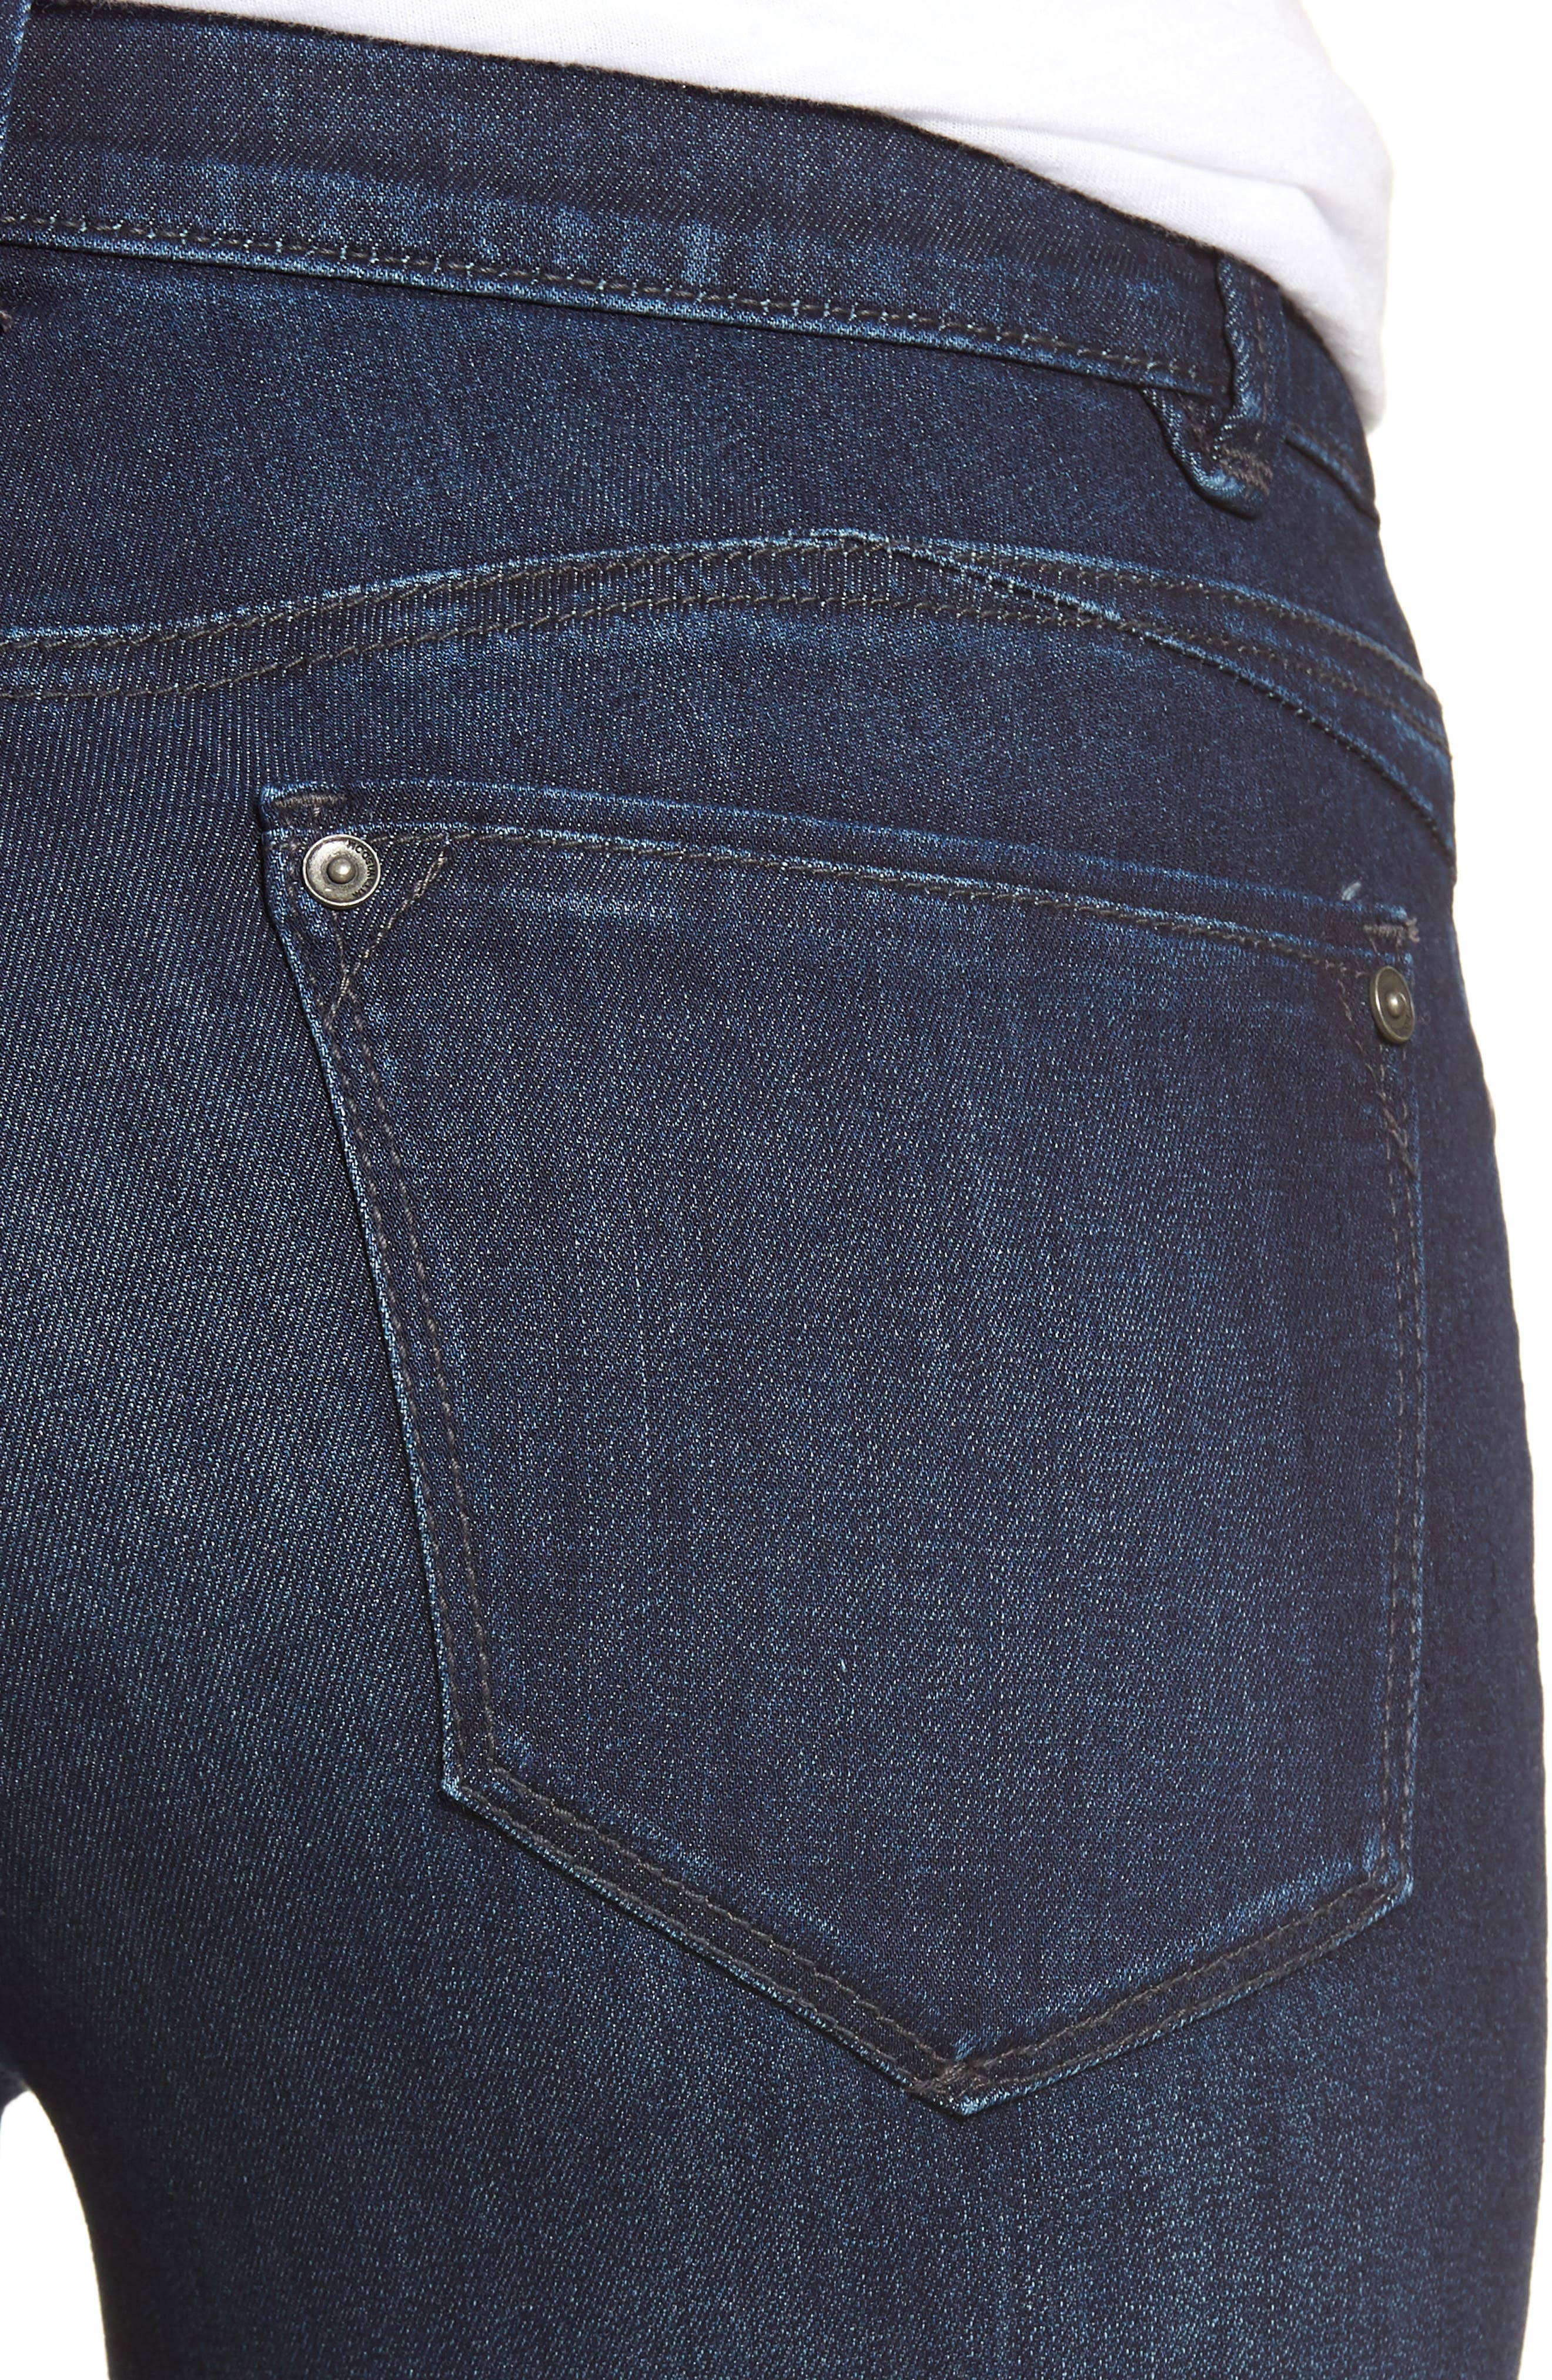 Ab-solution Skinny Jeans,                             Alternate thumbnail 4, color,                             402